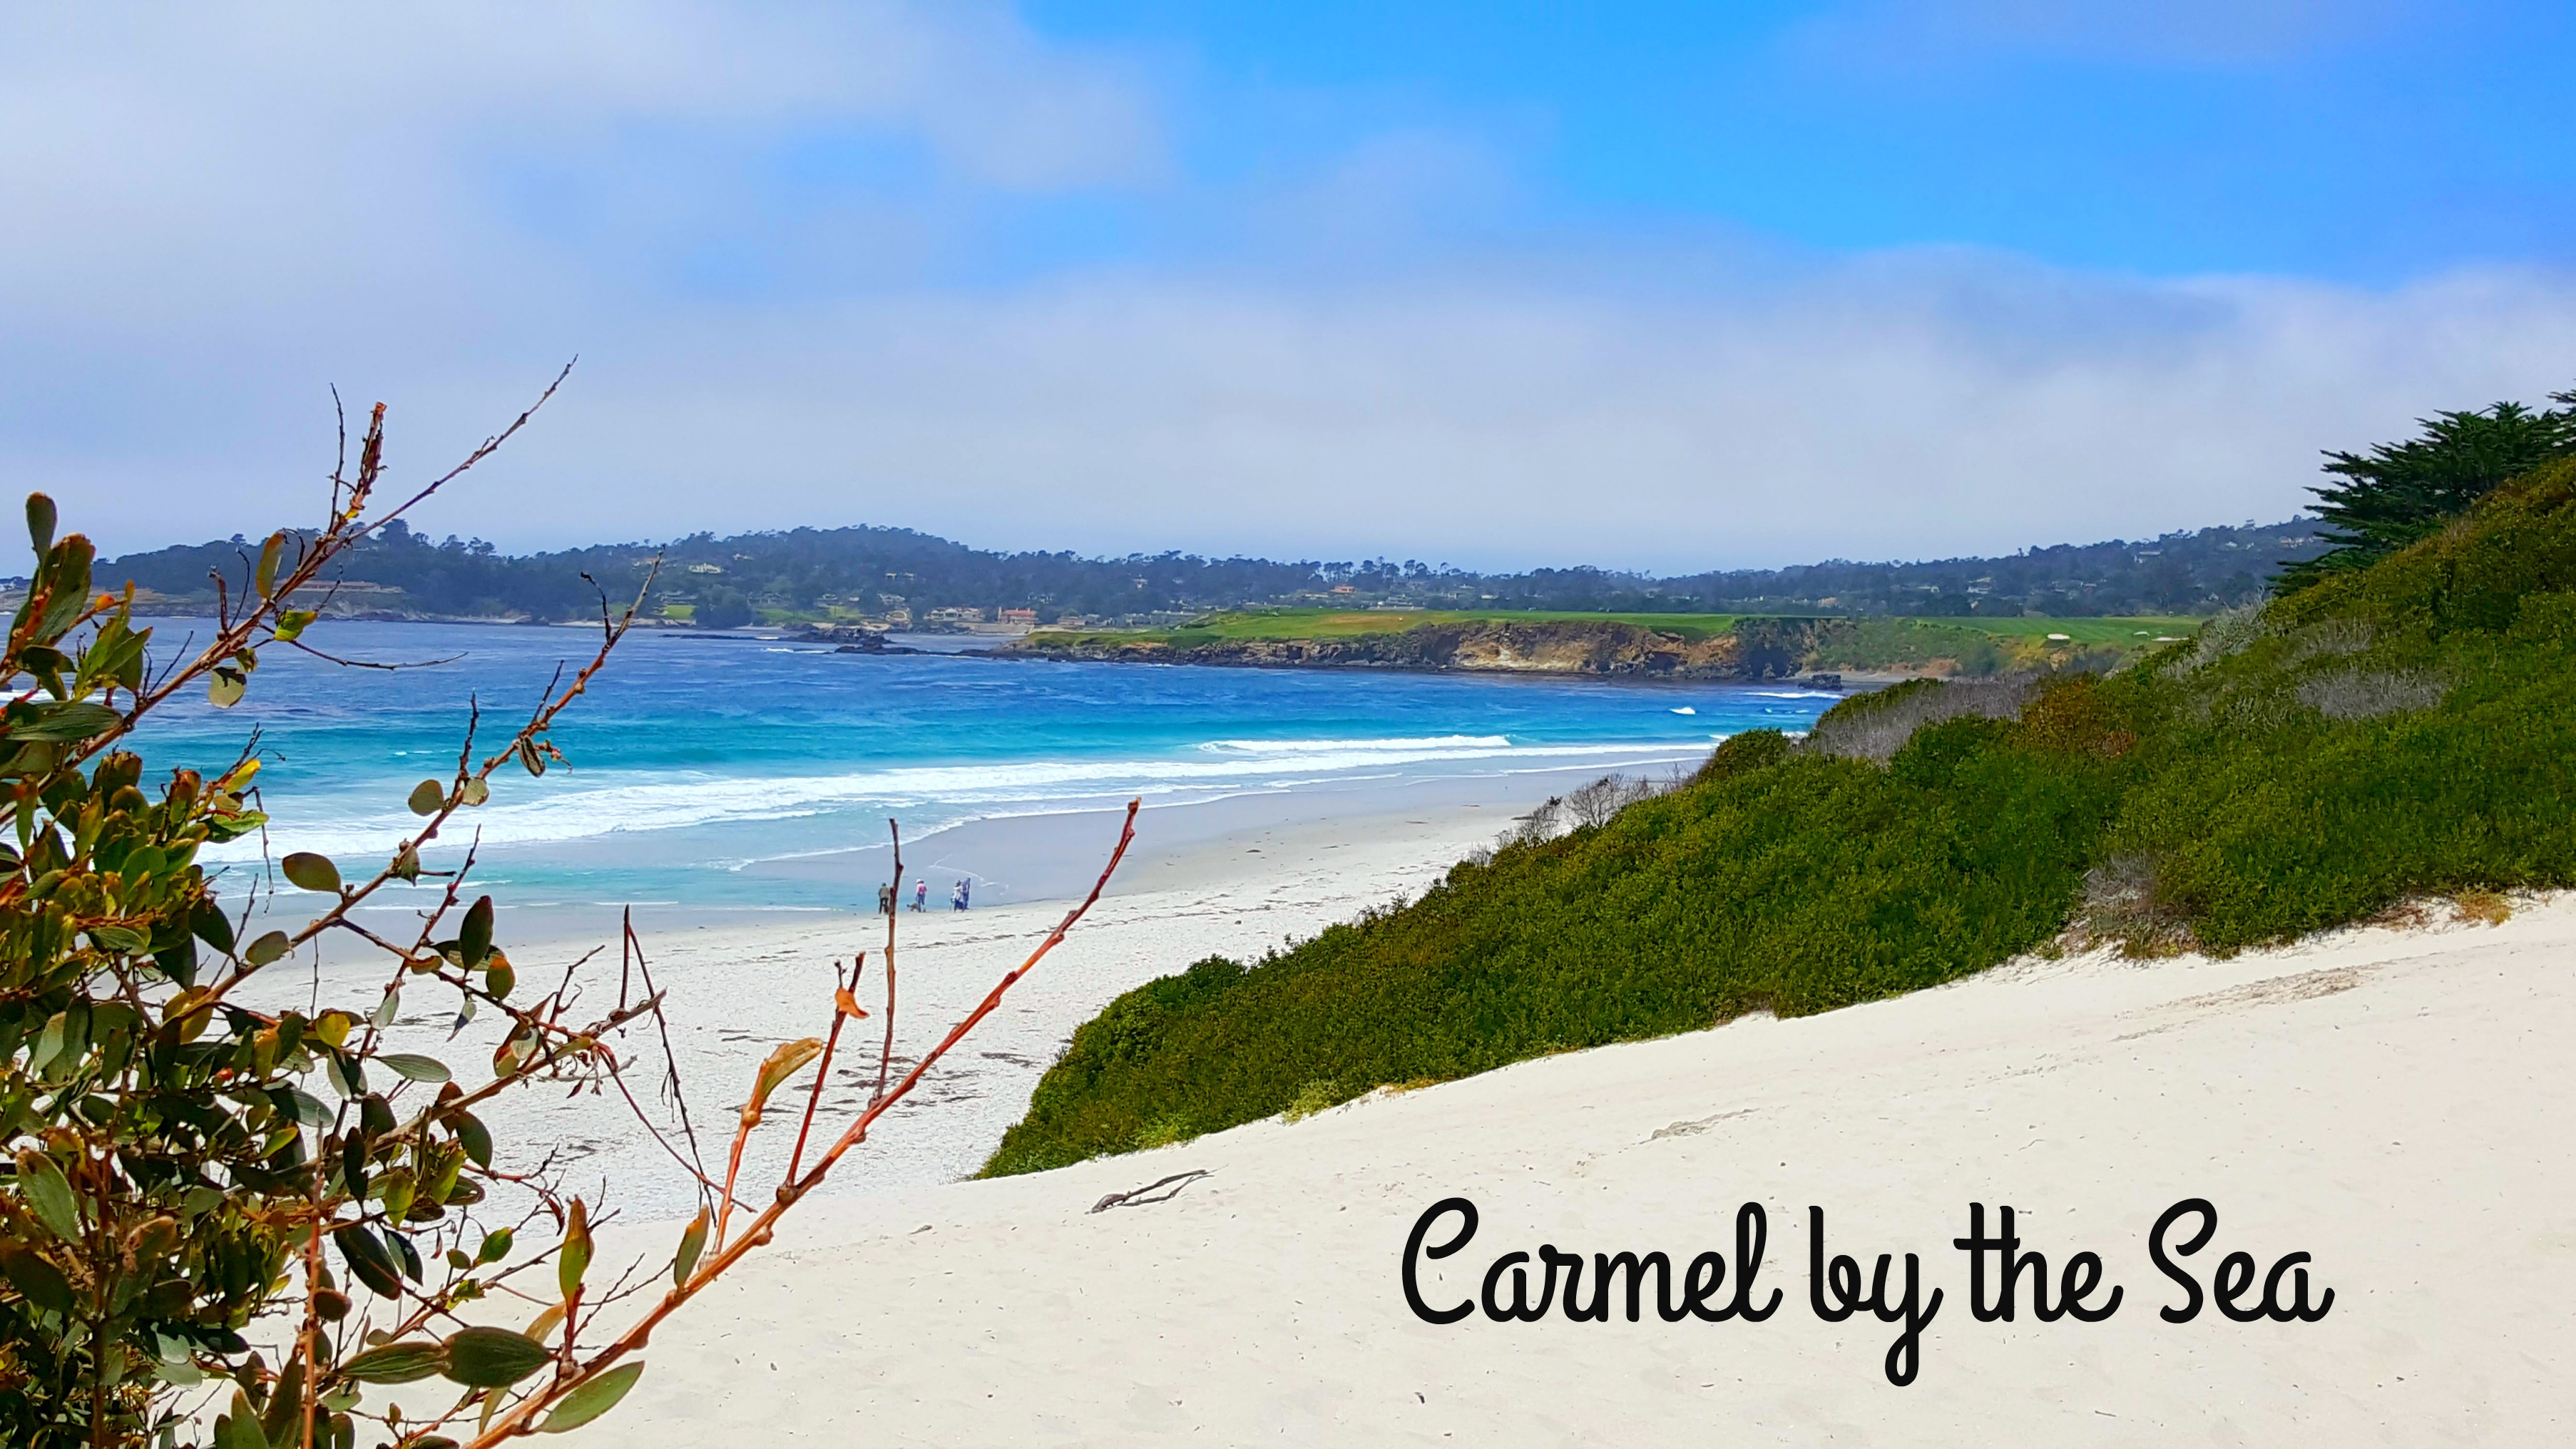 Carmel-by-the-Sea-LLBlogNotaConf